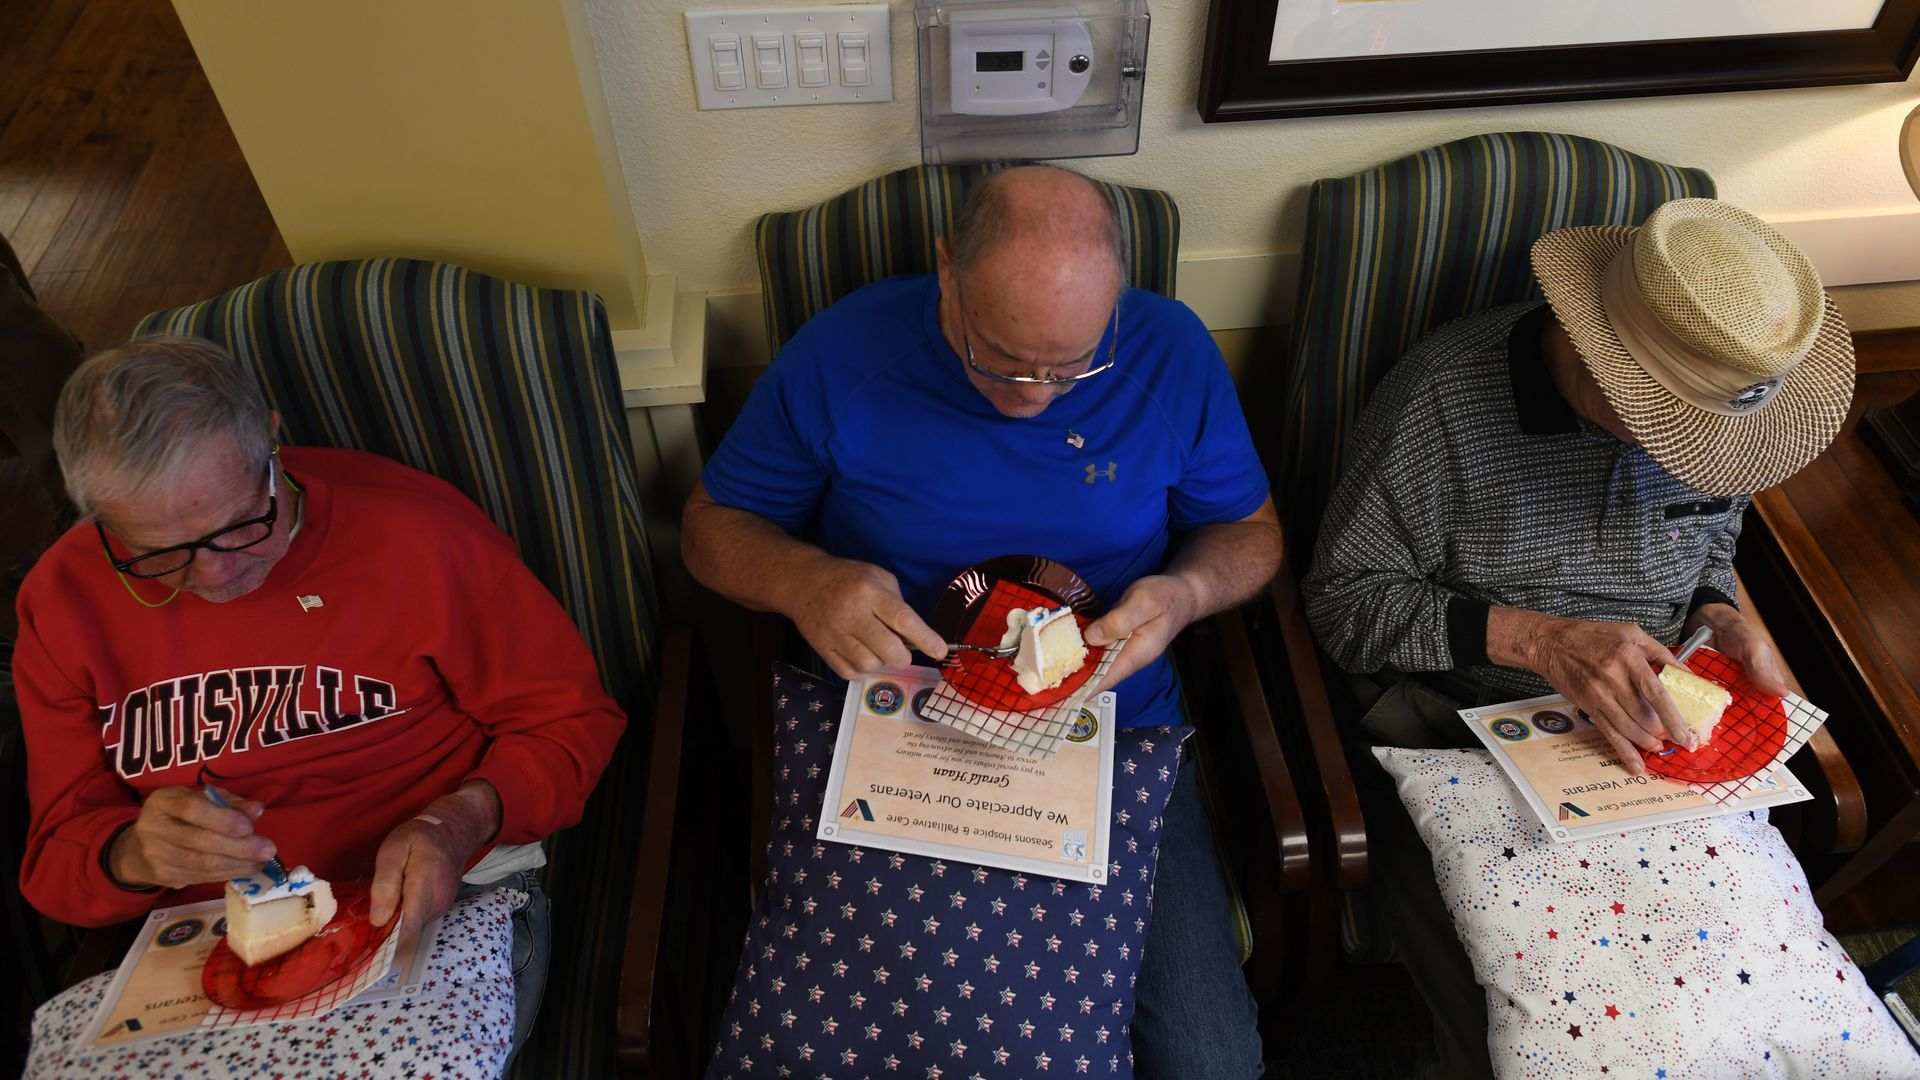 In this image, three seniors sit and eat cake. A few have blankets over their laps.